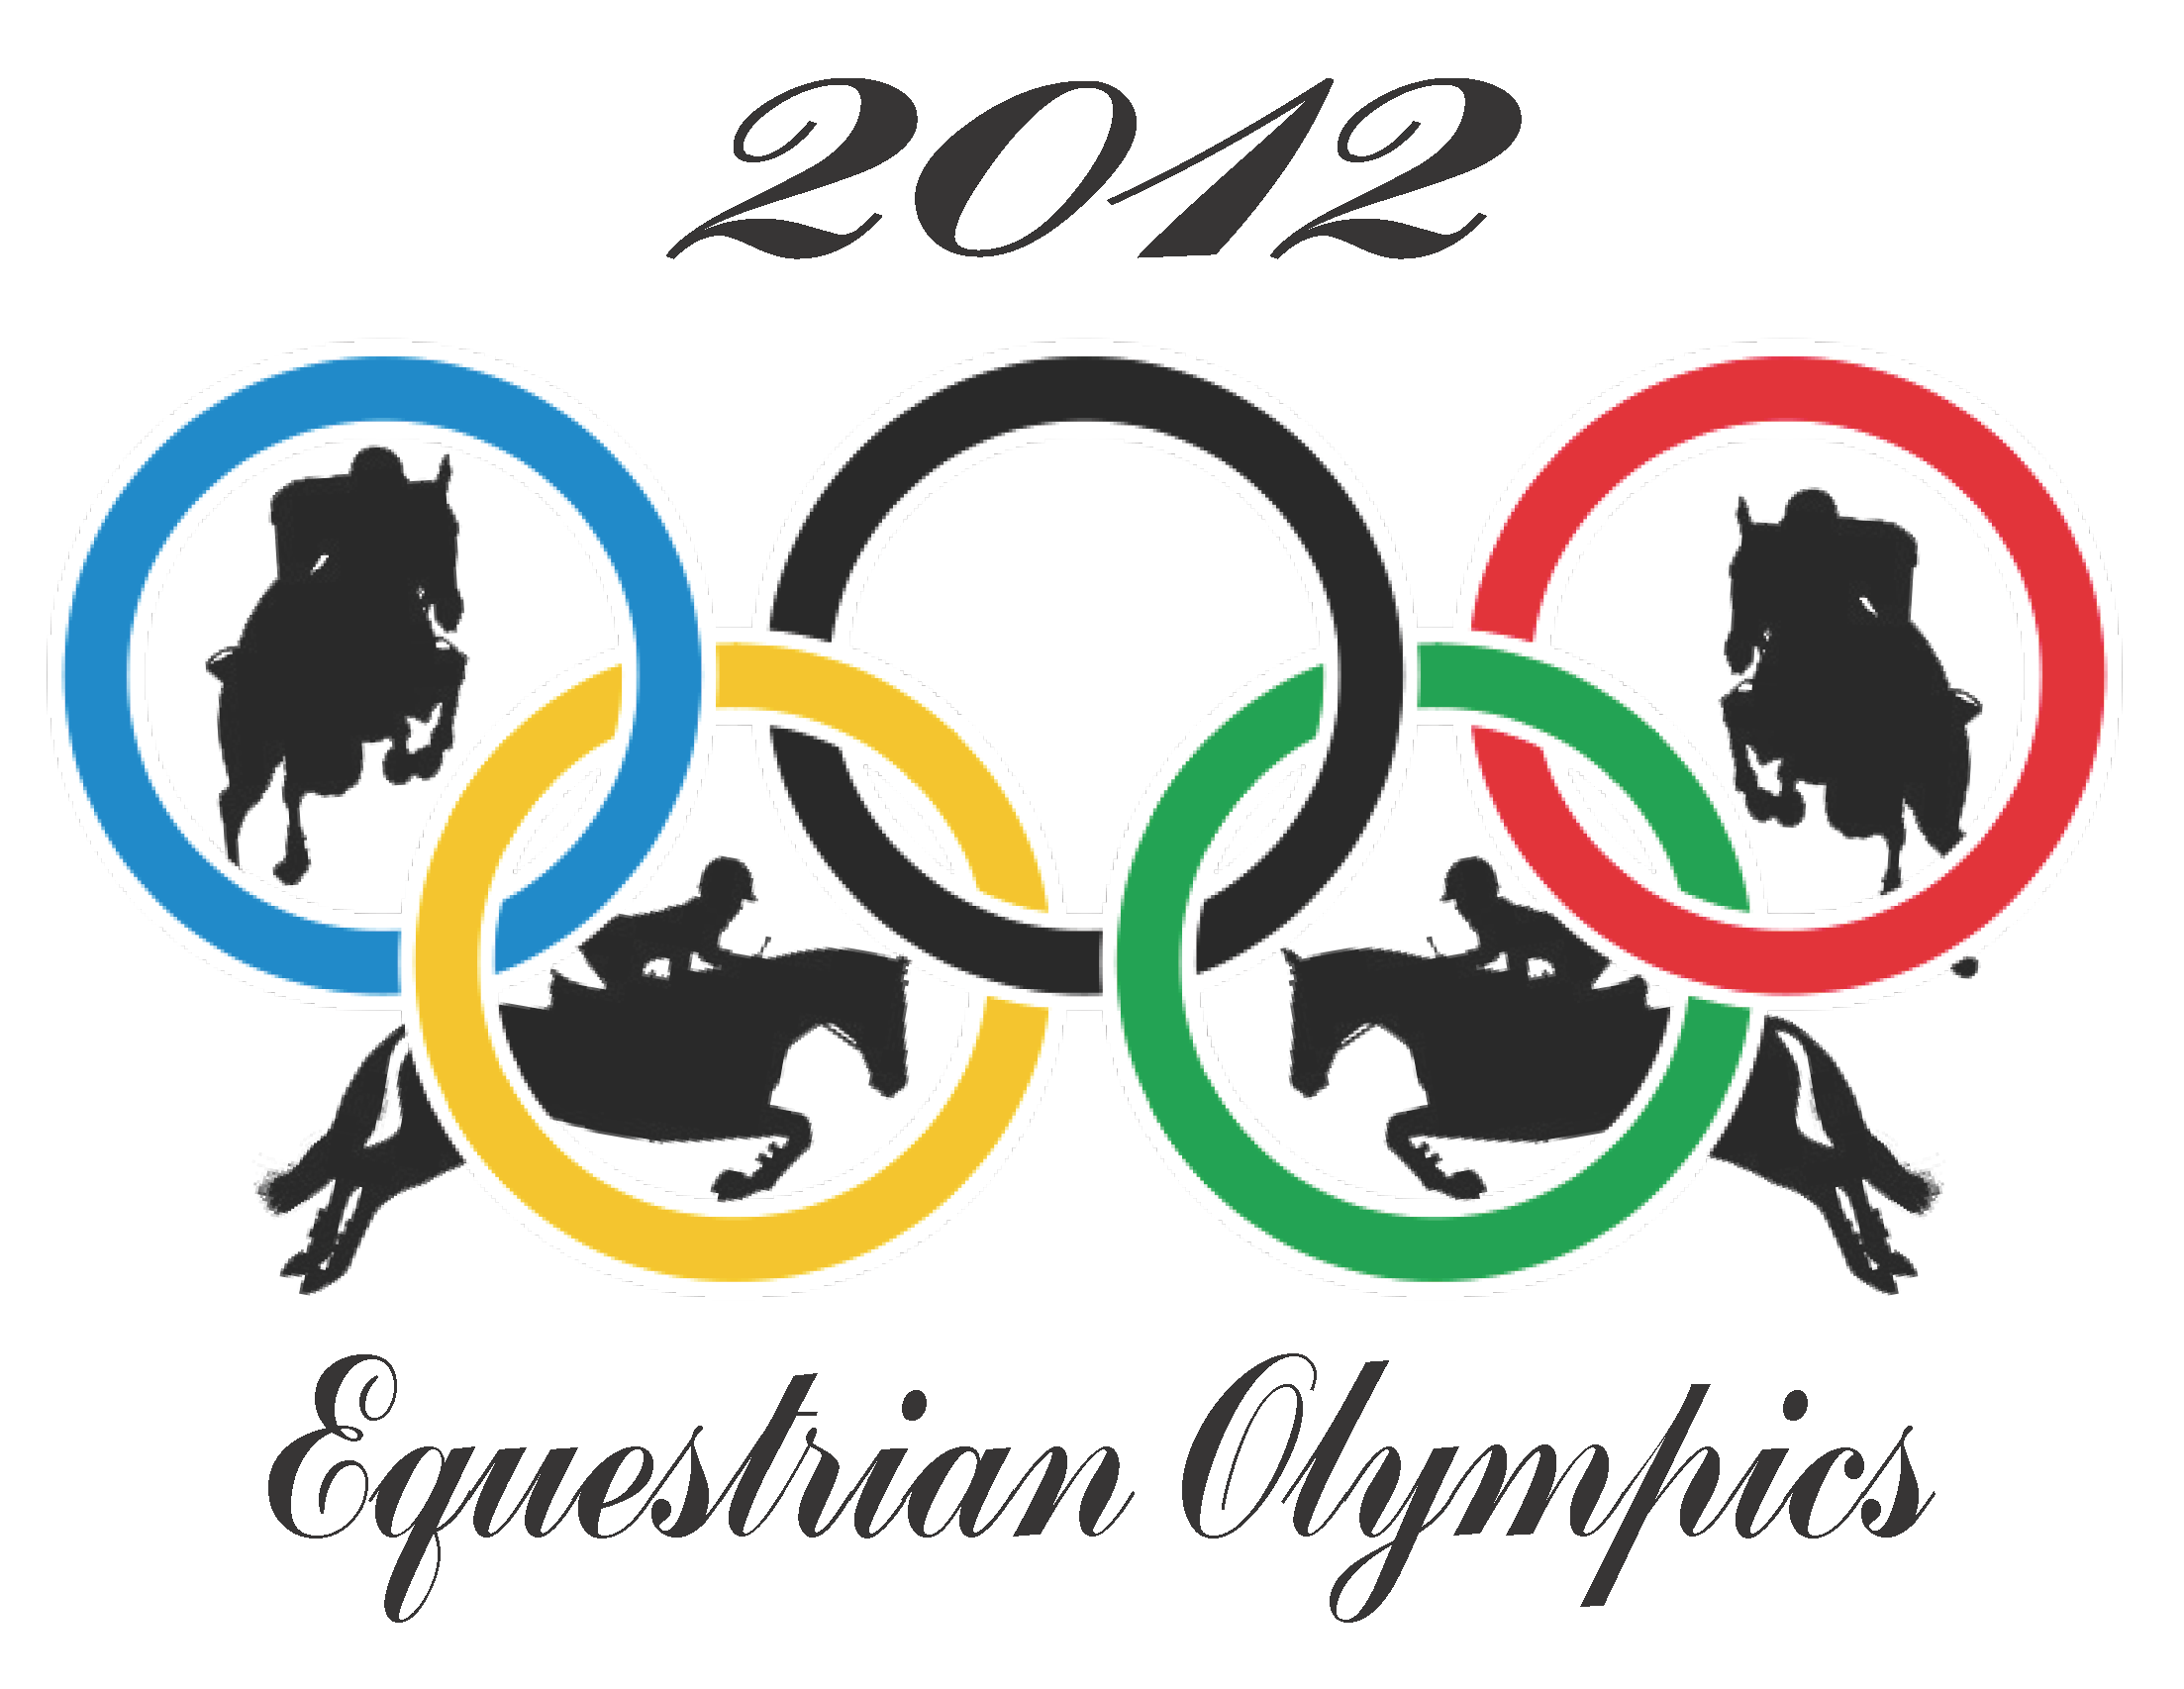 2012 Olympics Equestrian Is Rated 1 Most Difficult Sport Olympic Equestrian Horse Competition Equestrian Events